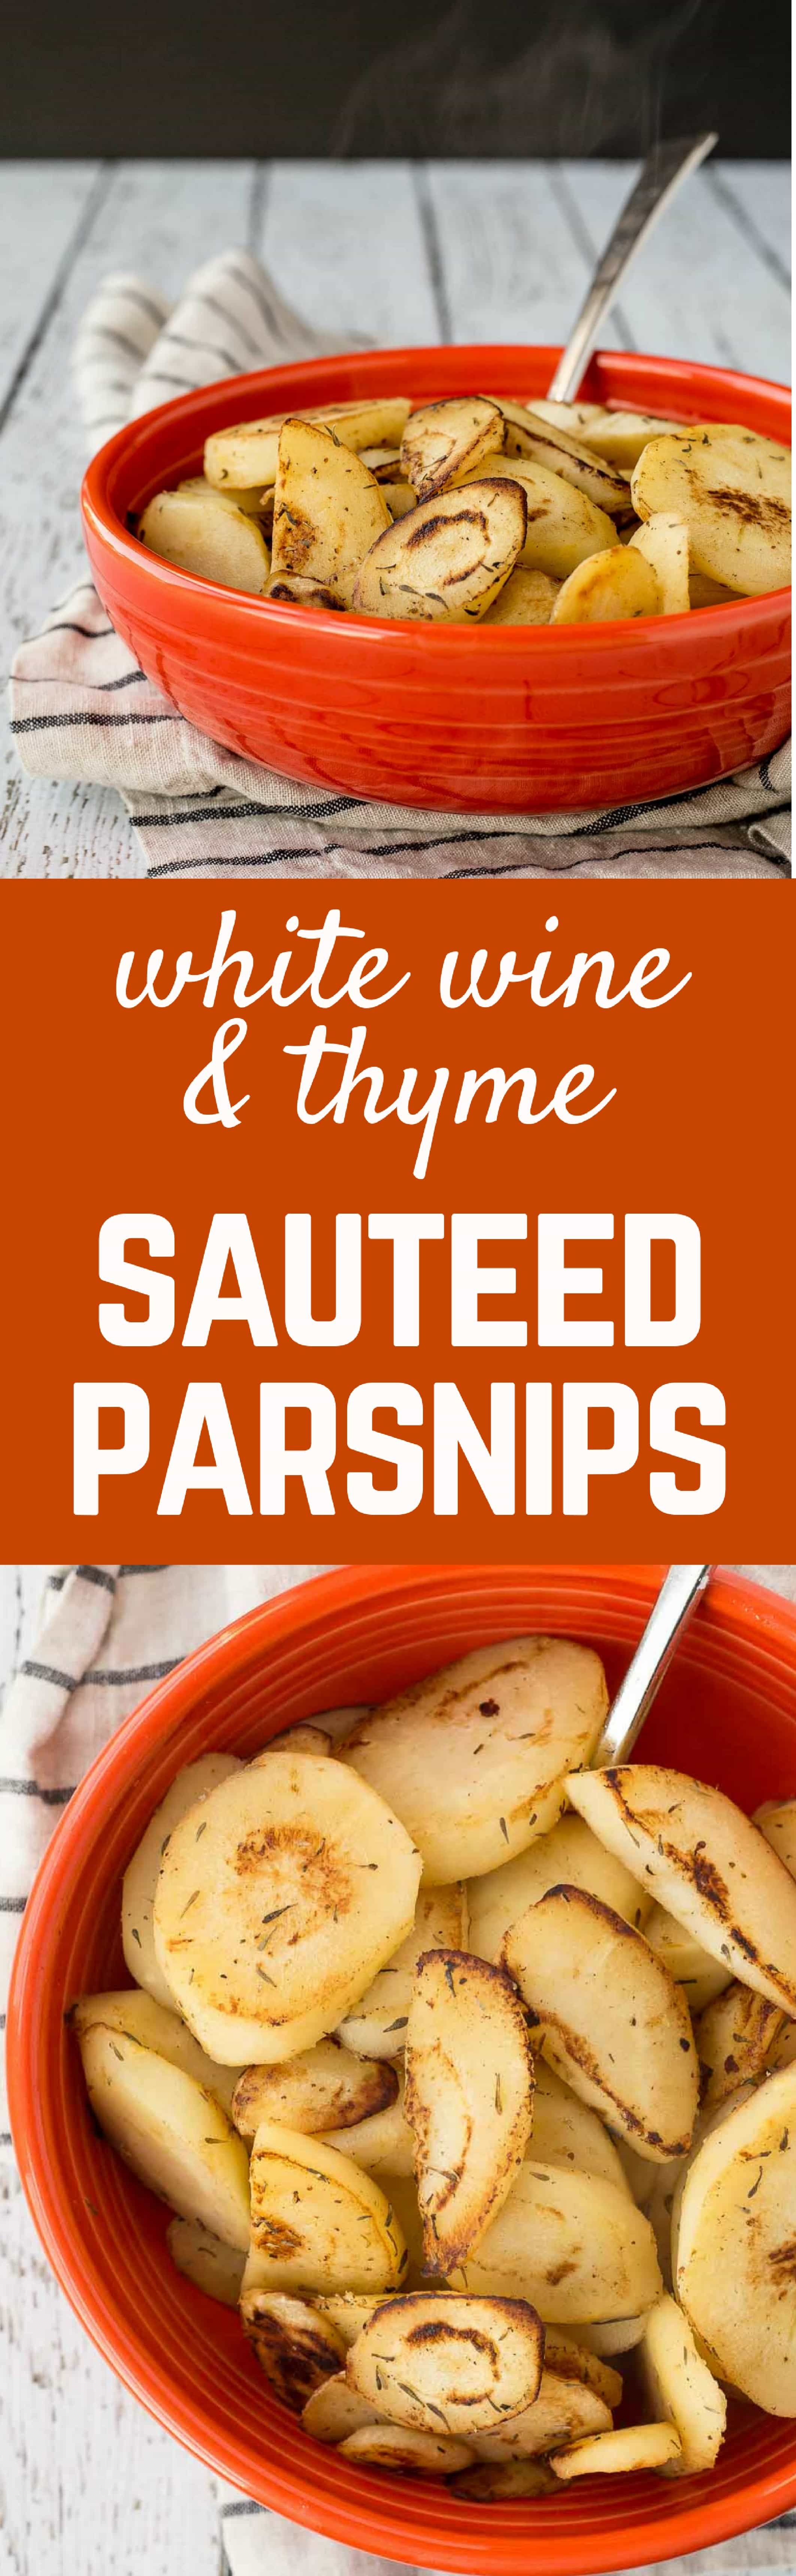 Sauteed Parsnips With White Wine And Thyme Recipe Food Dishes Recipes Vegetable Dishes